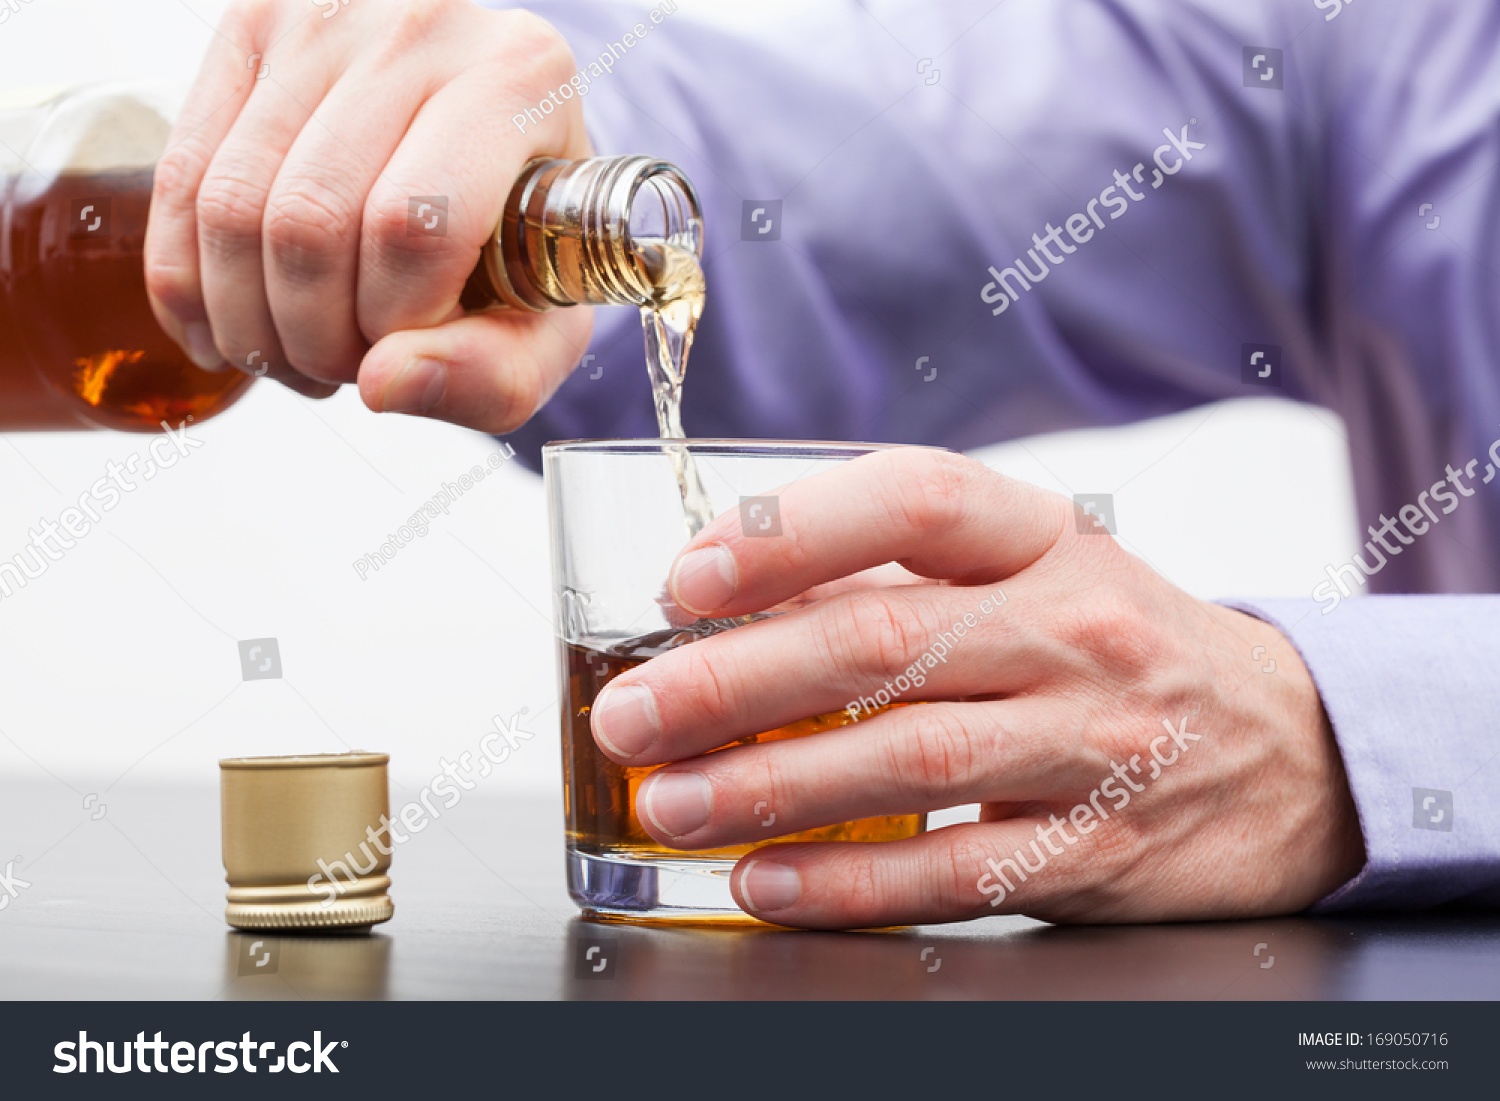 Businessman Hands Pouring Alcohol Into Glass Stock Photo ...